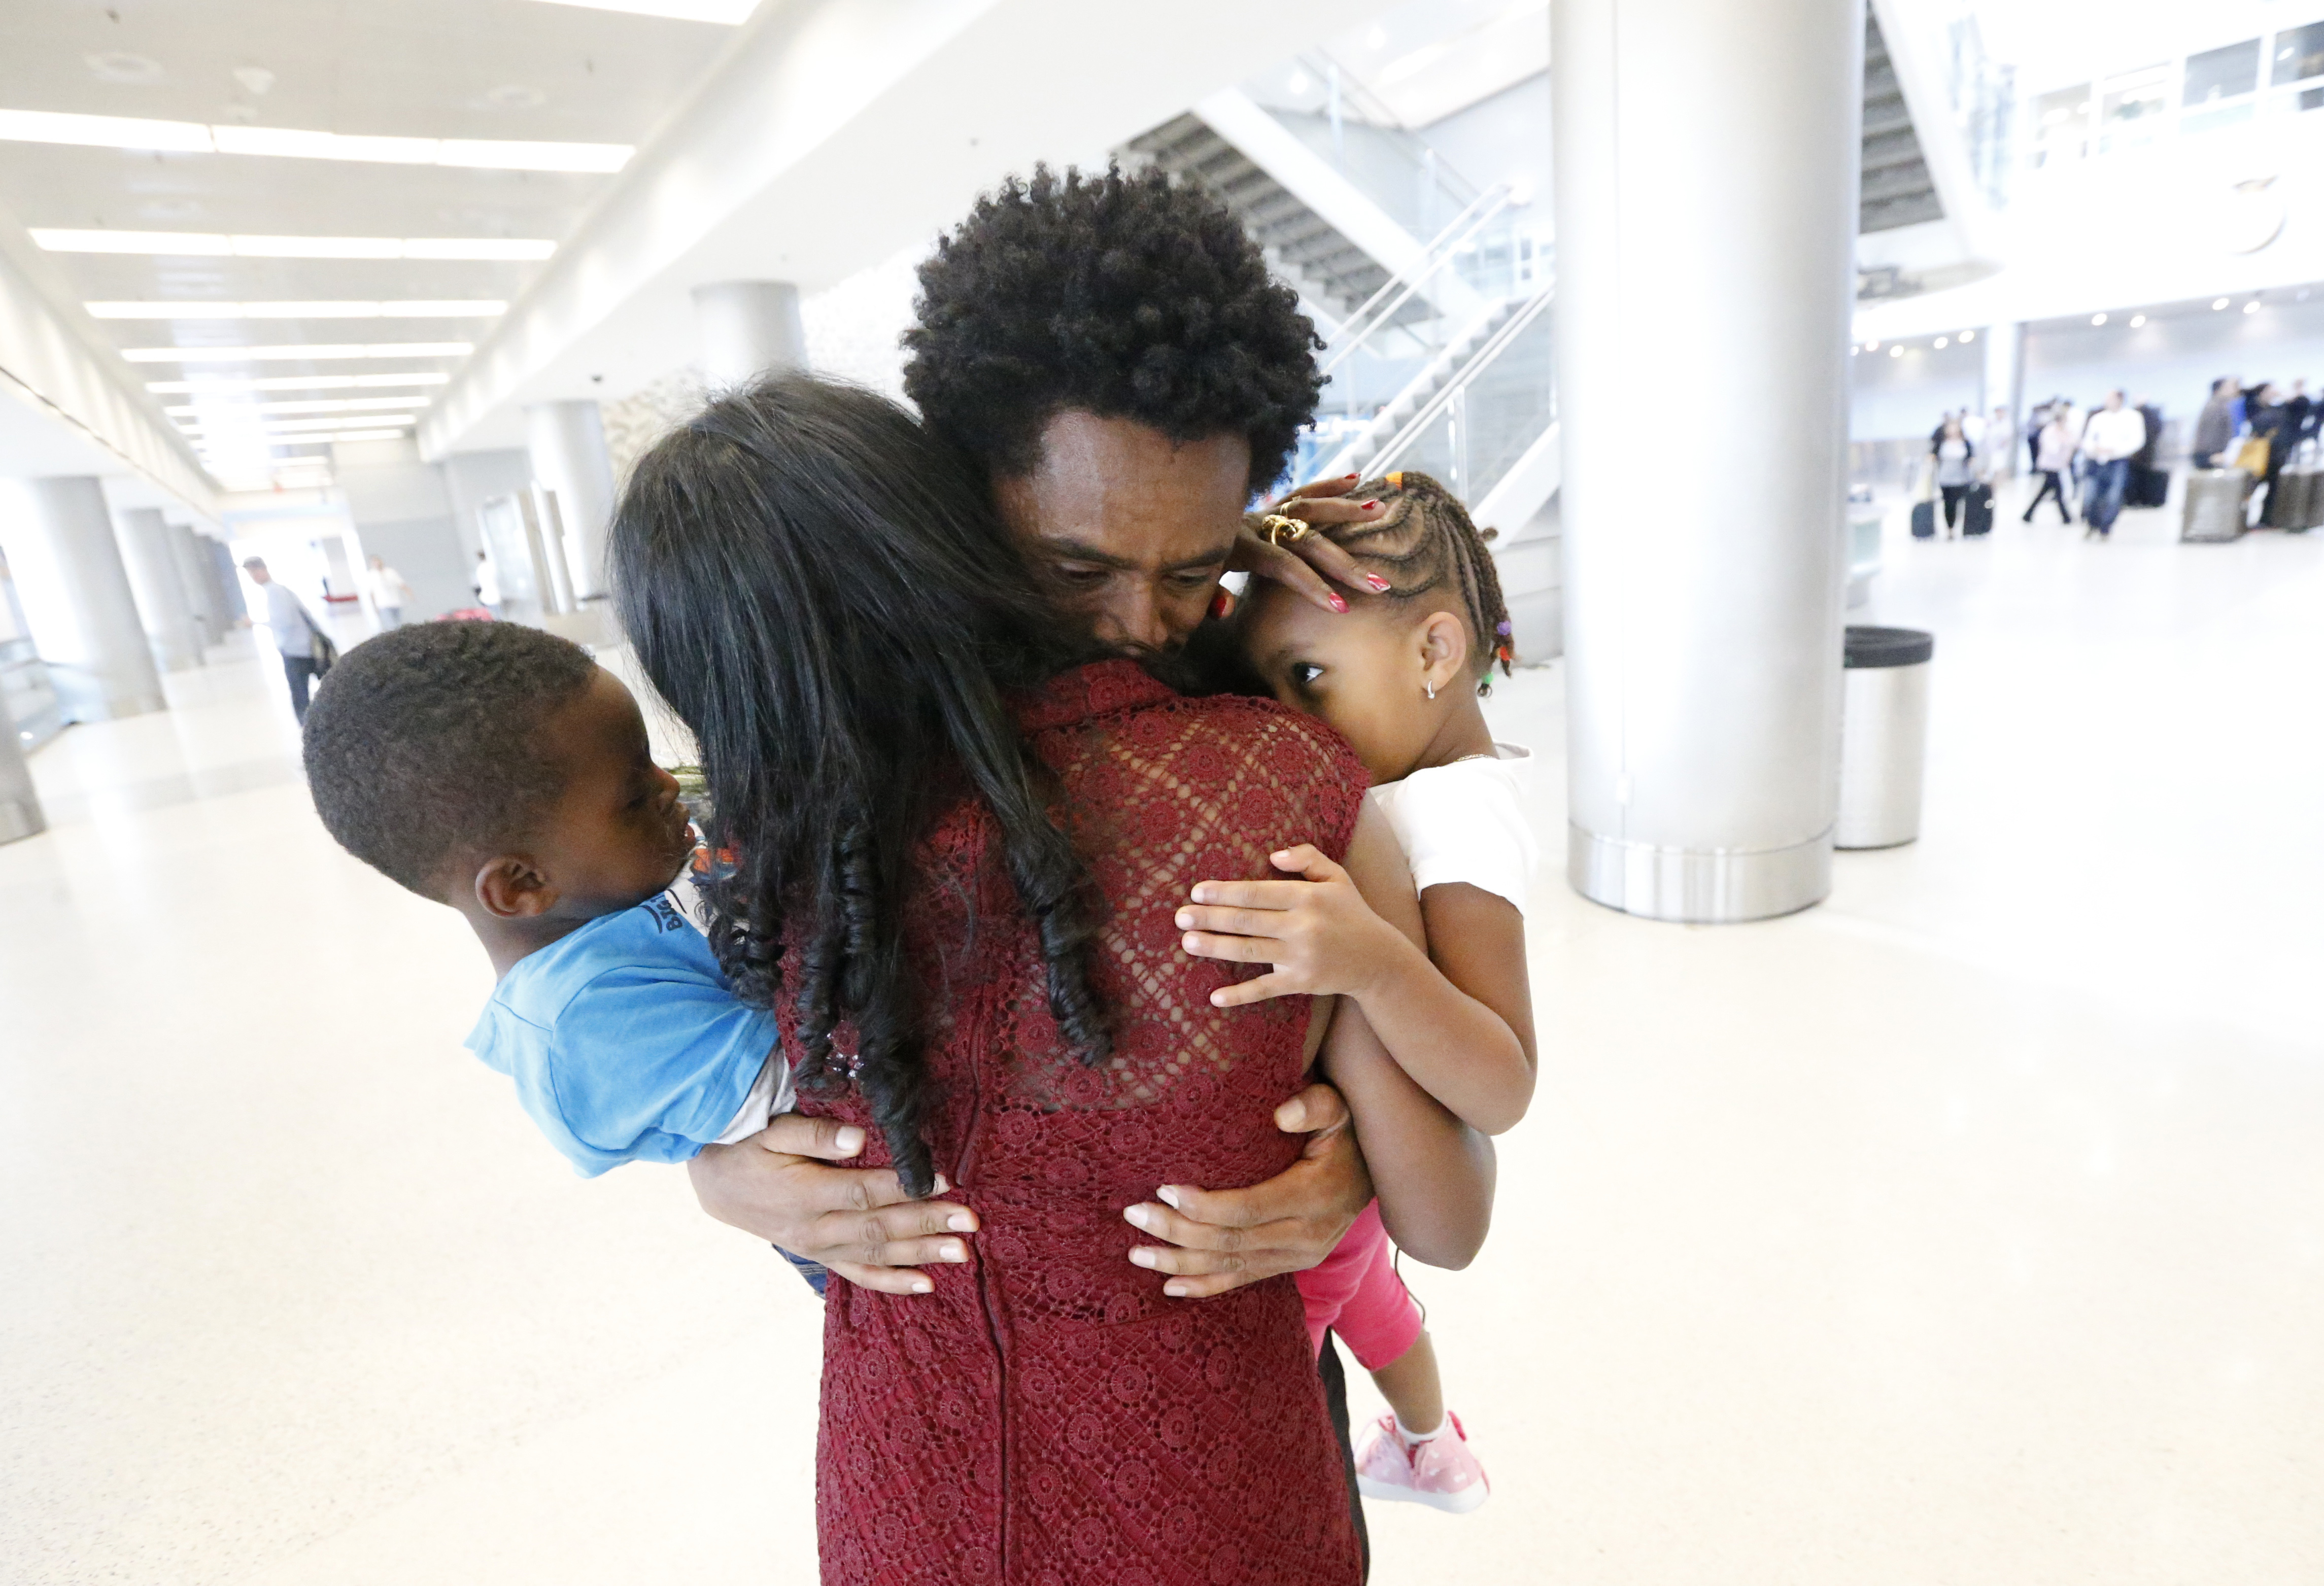 Olympic silver medalist Feyisa Lilesa, rear, of Ethiopia, hugs his wife Iftu Mulia, his daughter Soko, right, 5, and son Sora, left, 3, while picking up his family at Miami International Airport, Tuesday, Feb. 14, 2017, in Miami. Lilesa arrived in the U.S. on a special skills visa, which allows him to train and compete until January. His wife, son, daughter and brother joined him in Miami Tuesday.